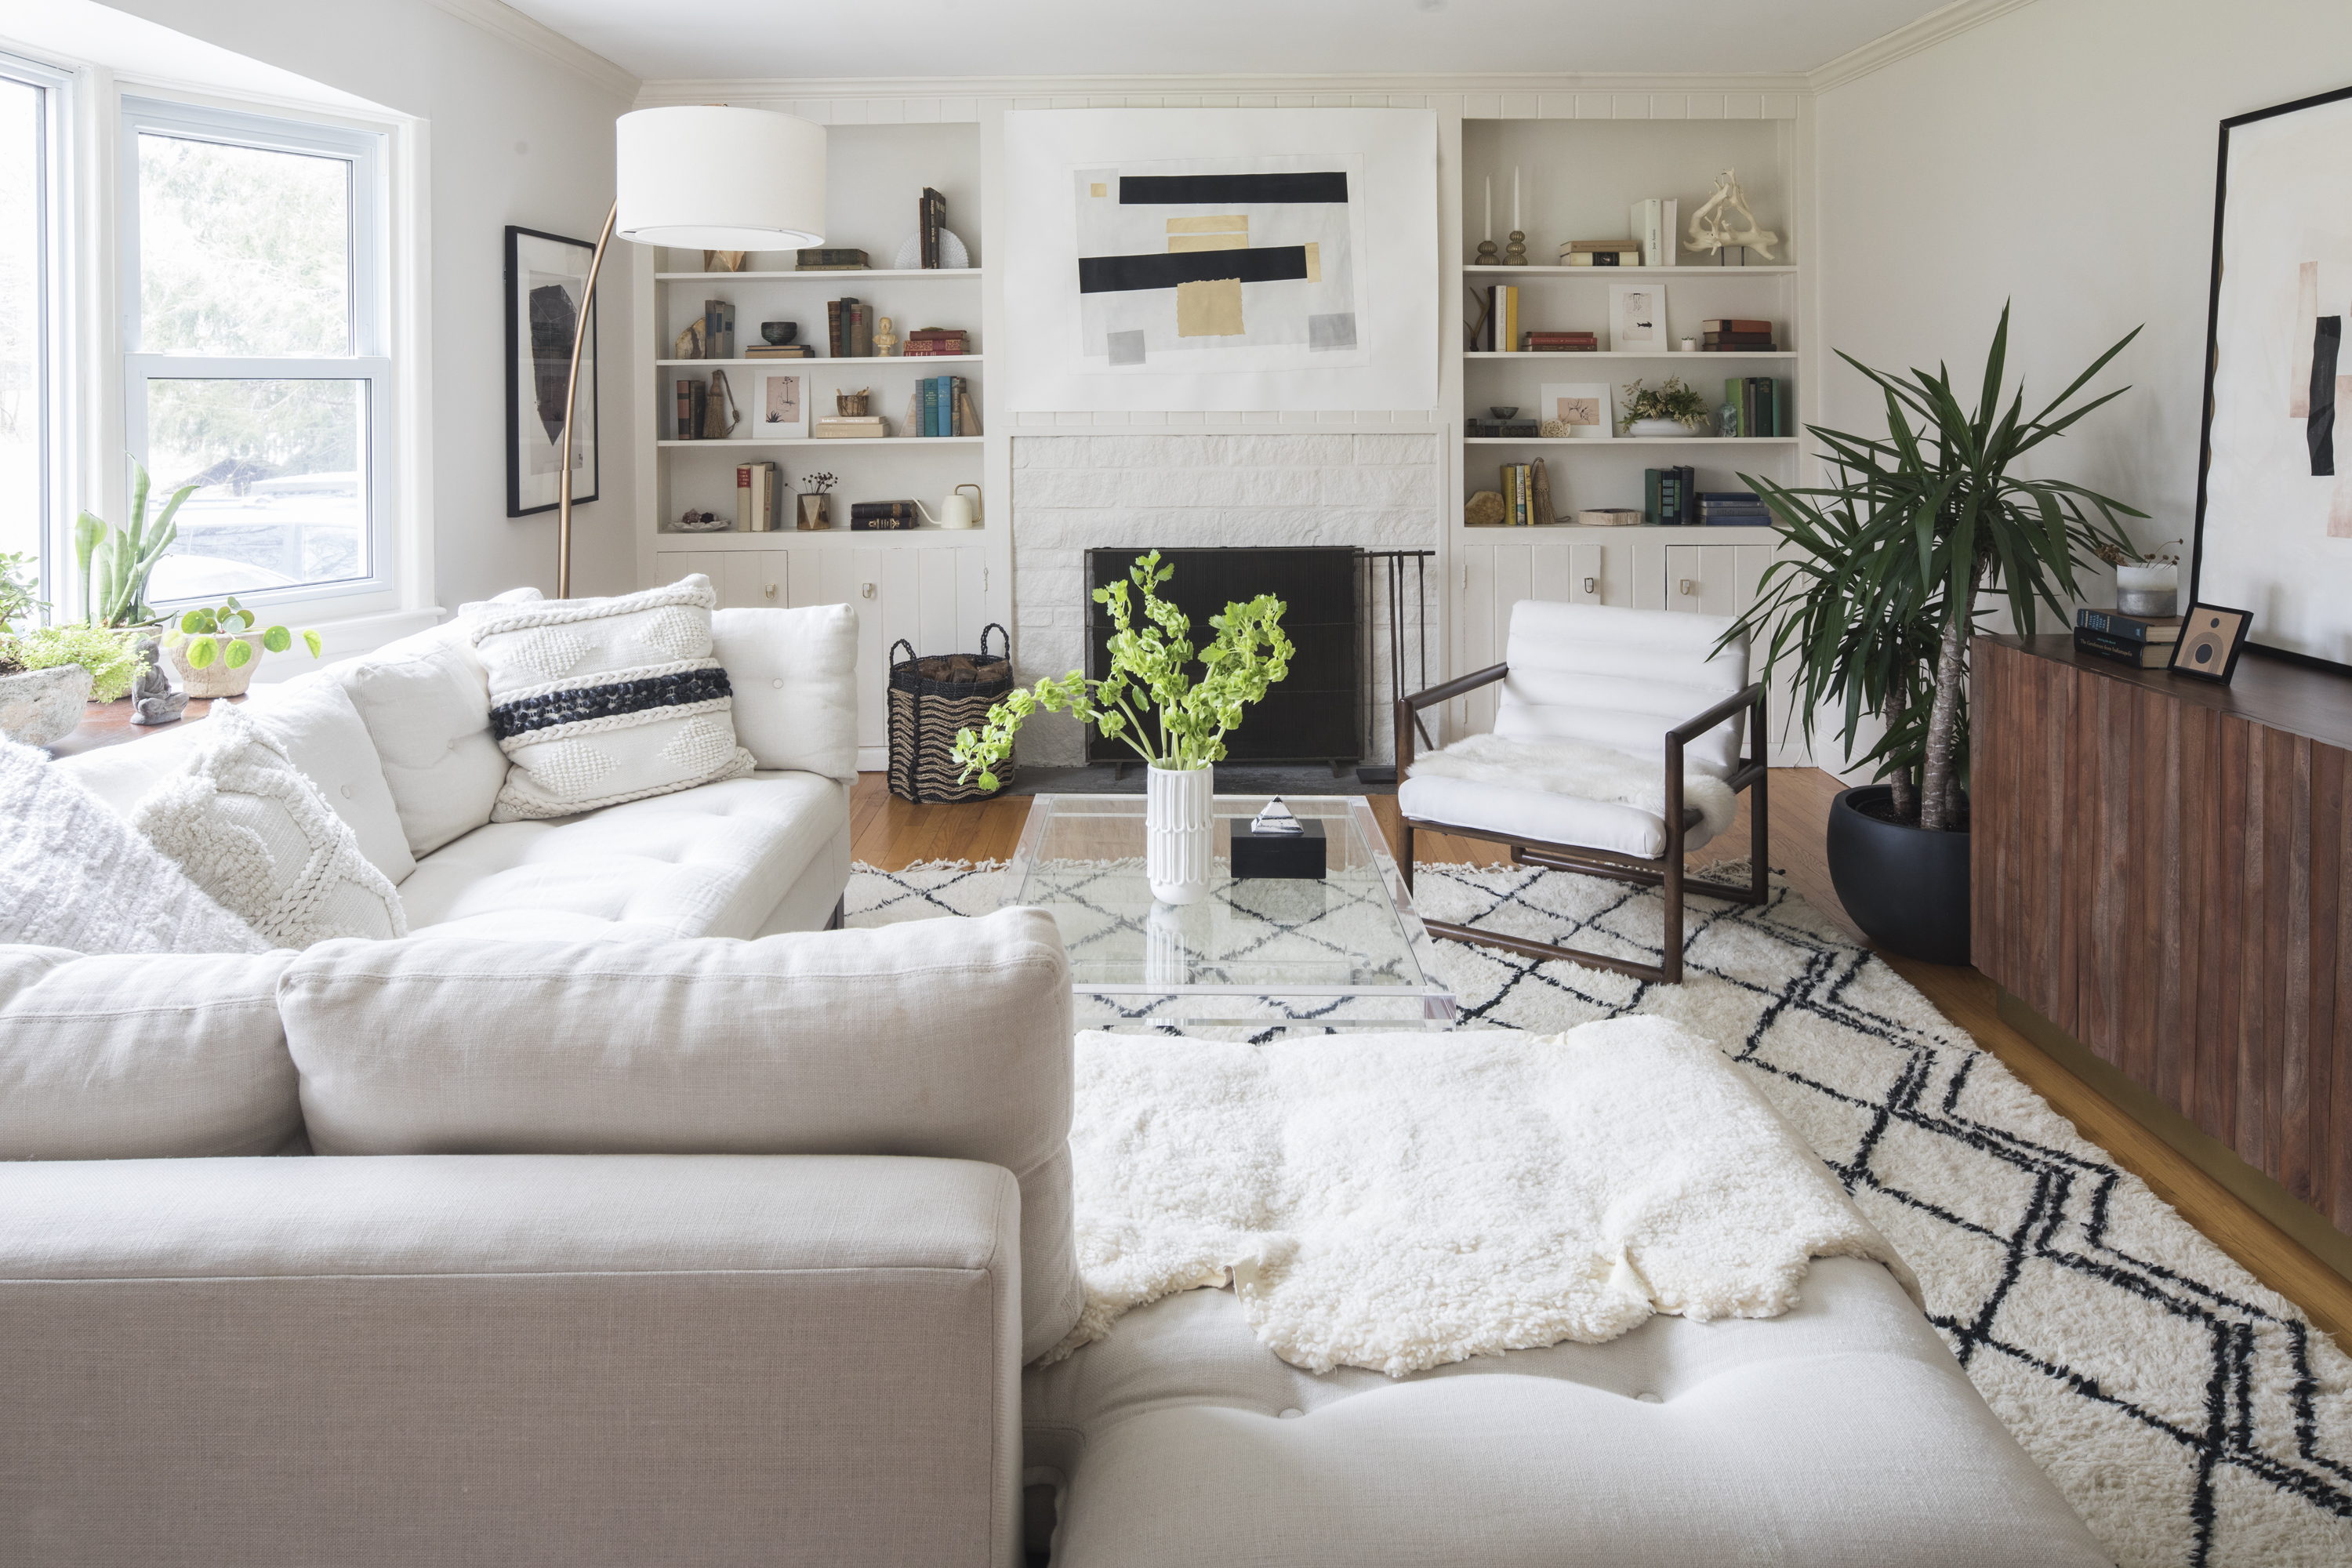 Before And After Redecorating Ideas In A Cape Cod Style Home Apartment Therapy